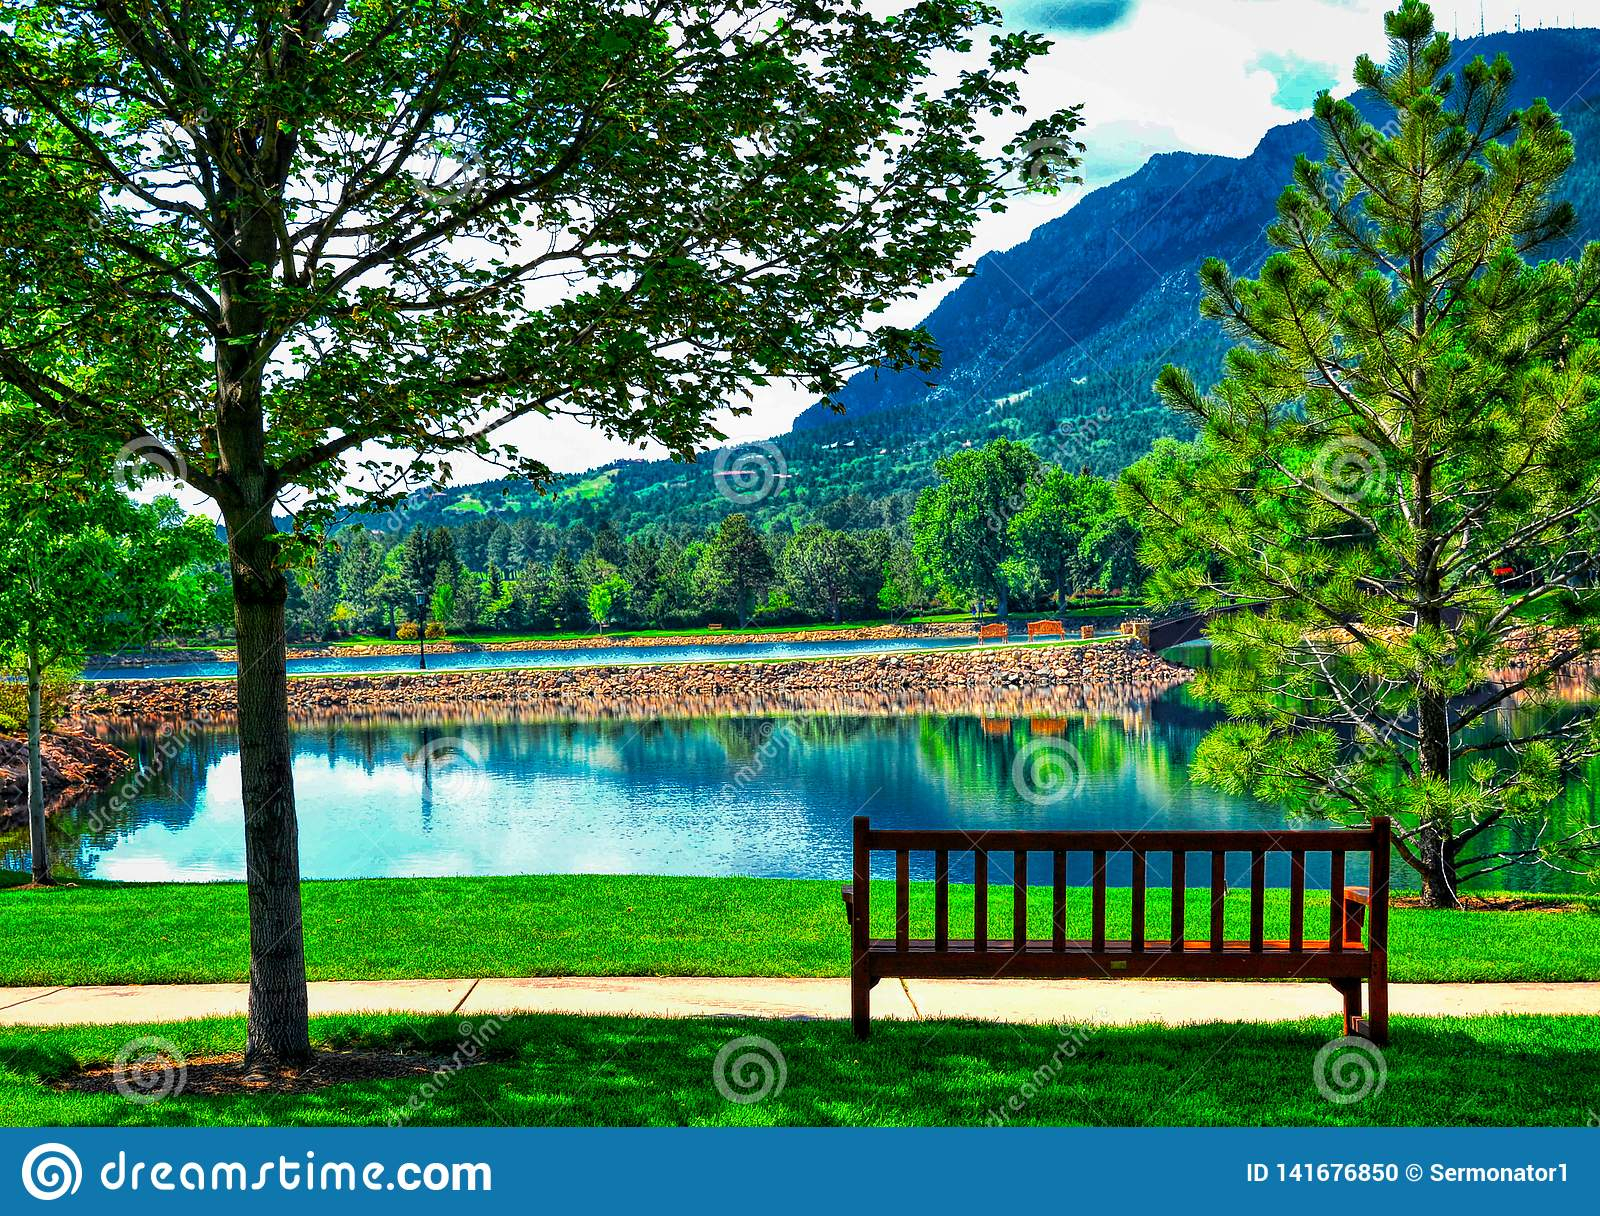 A Peaceful and Idyllic Image at the Broadmoor Hotel at Cheyene Mountain Lake and bench